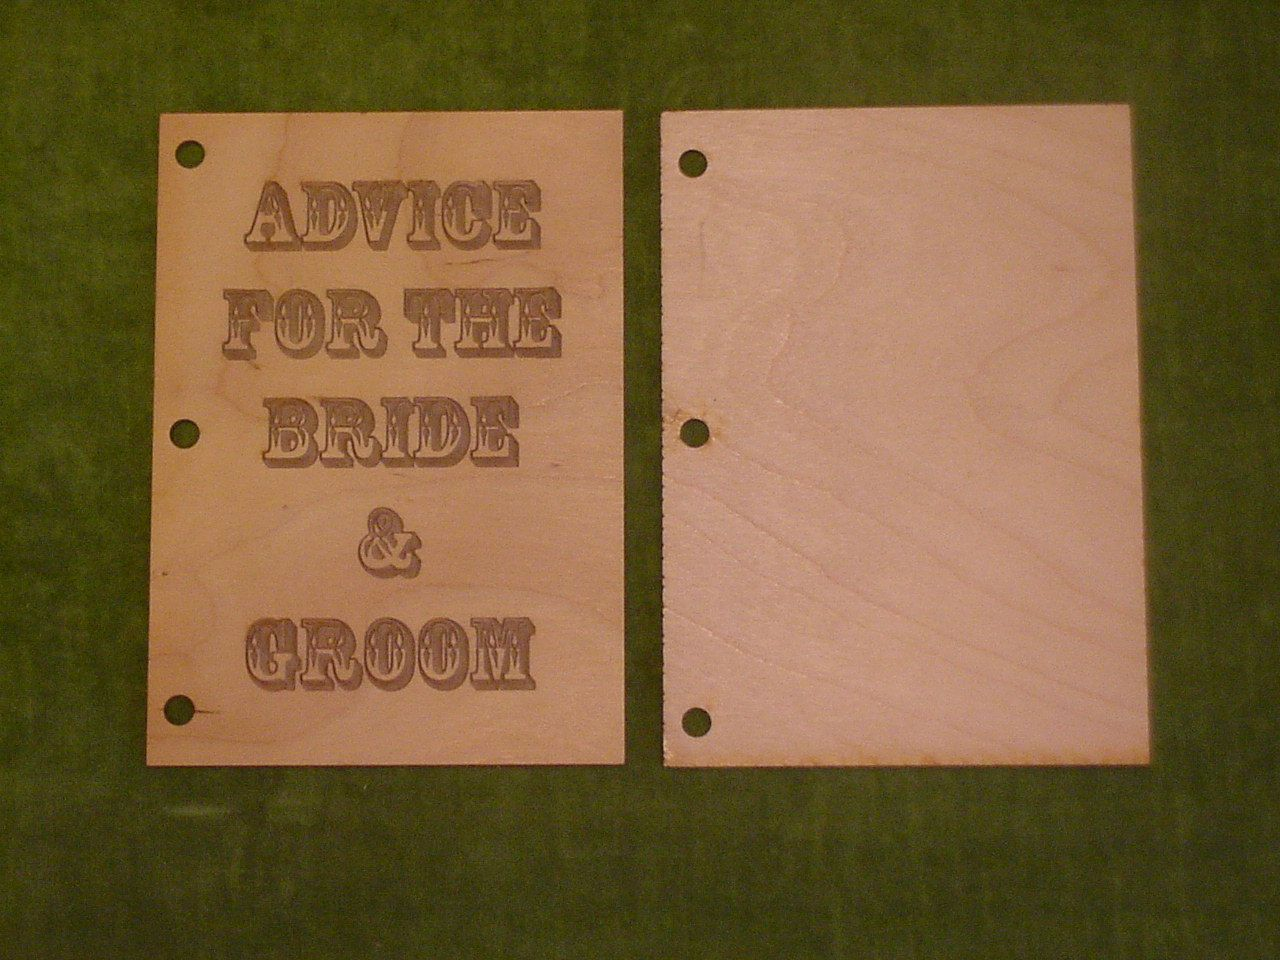 """New 7 x 5 Untreated Wood Laser Cut """"Advice For The Bride & Groom"""" Front And Back Plates"""